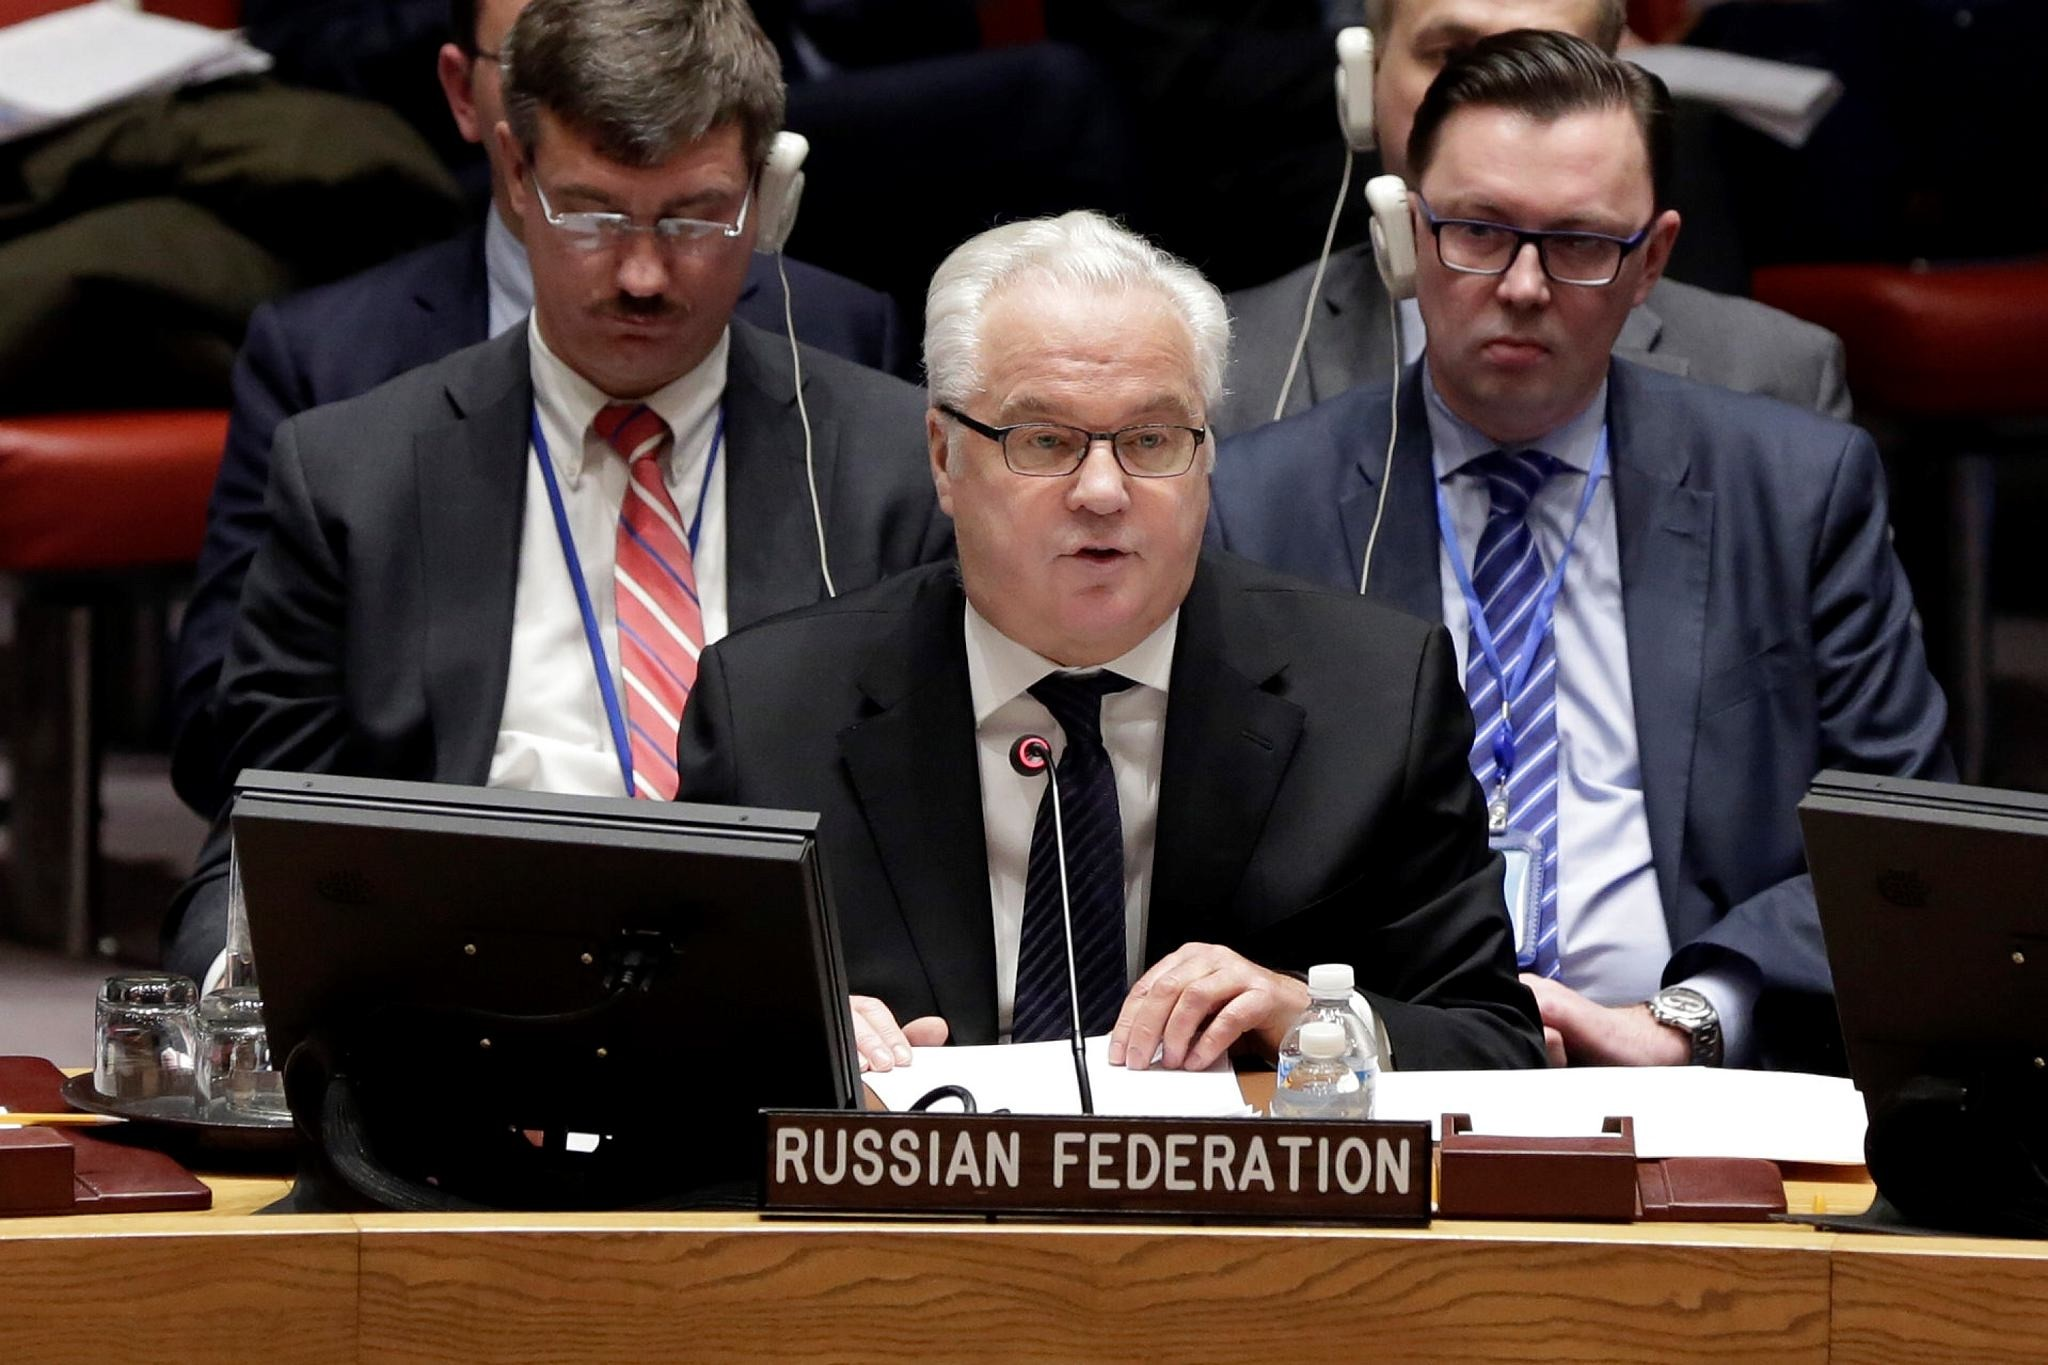 Russia's Ambassador to the U.N. Vitaly Churkin addresses a Security Council meeting at the United Nations, Thursday, Feb. 2, 2017. (AP Photo)